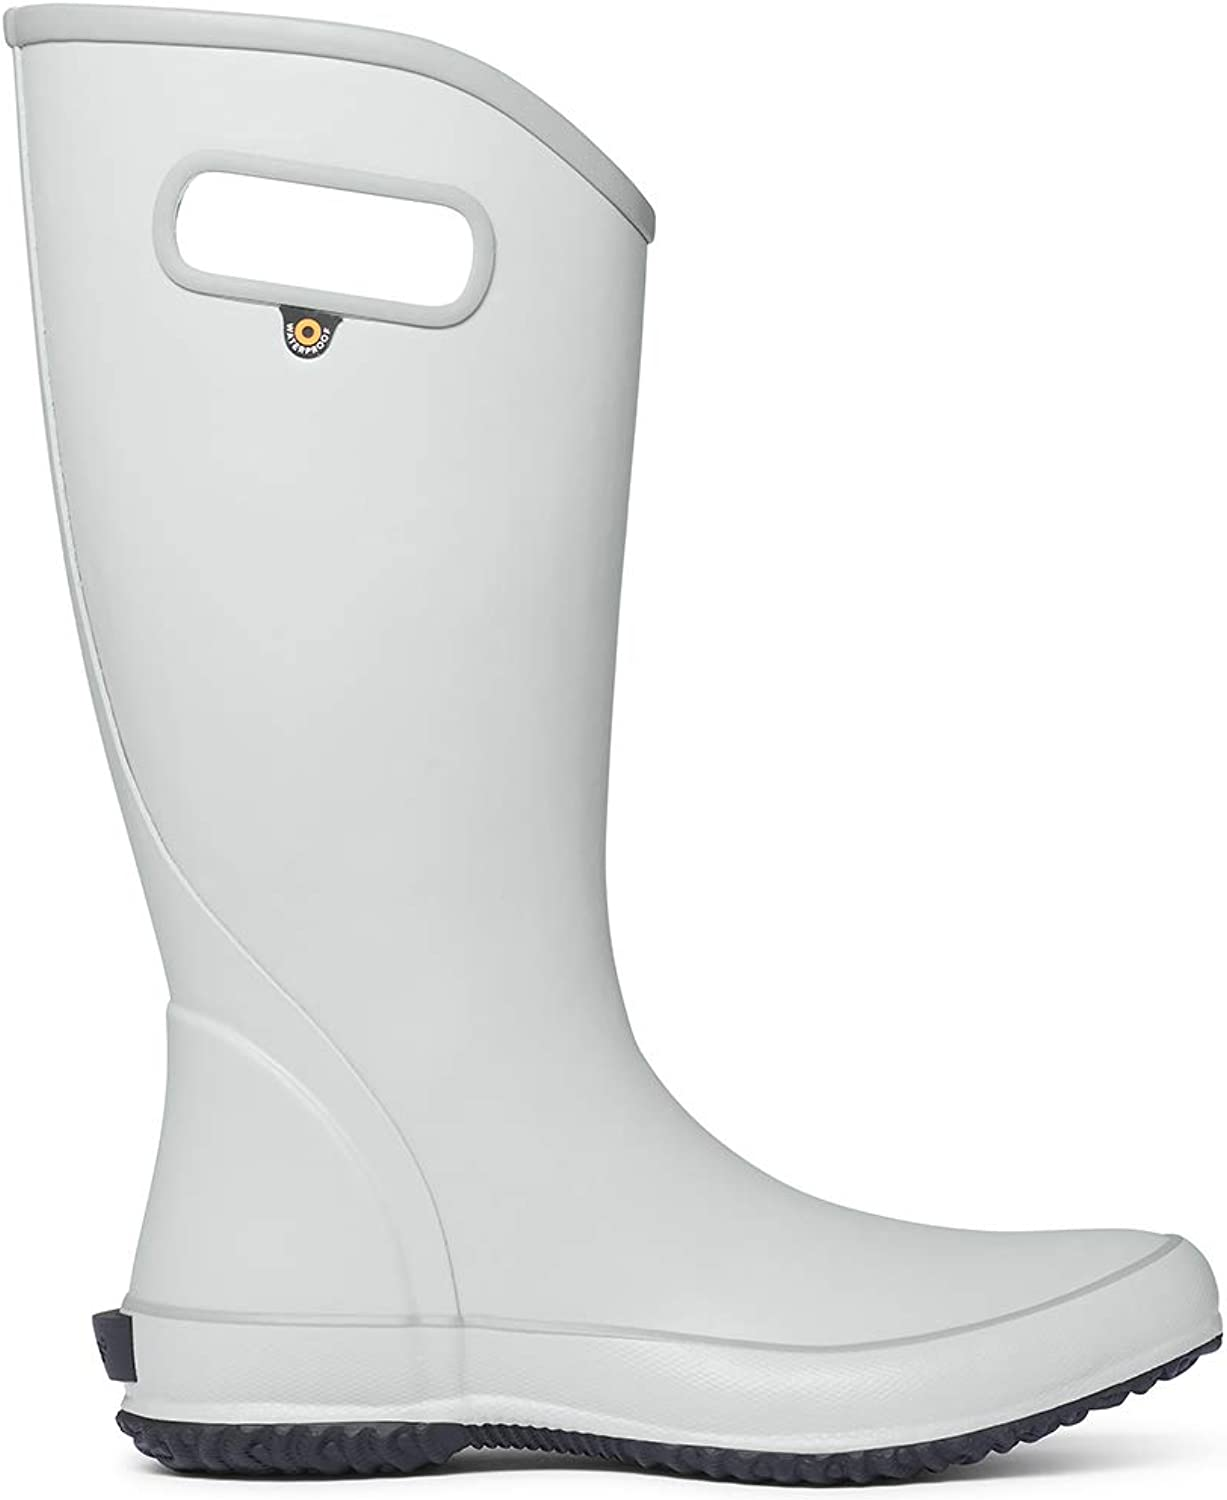 Bogs Women's Solid Rain Boot